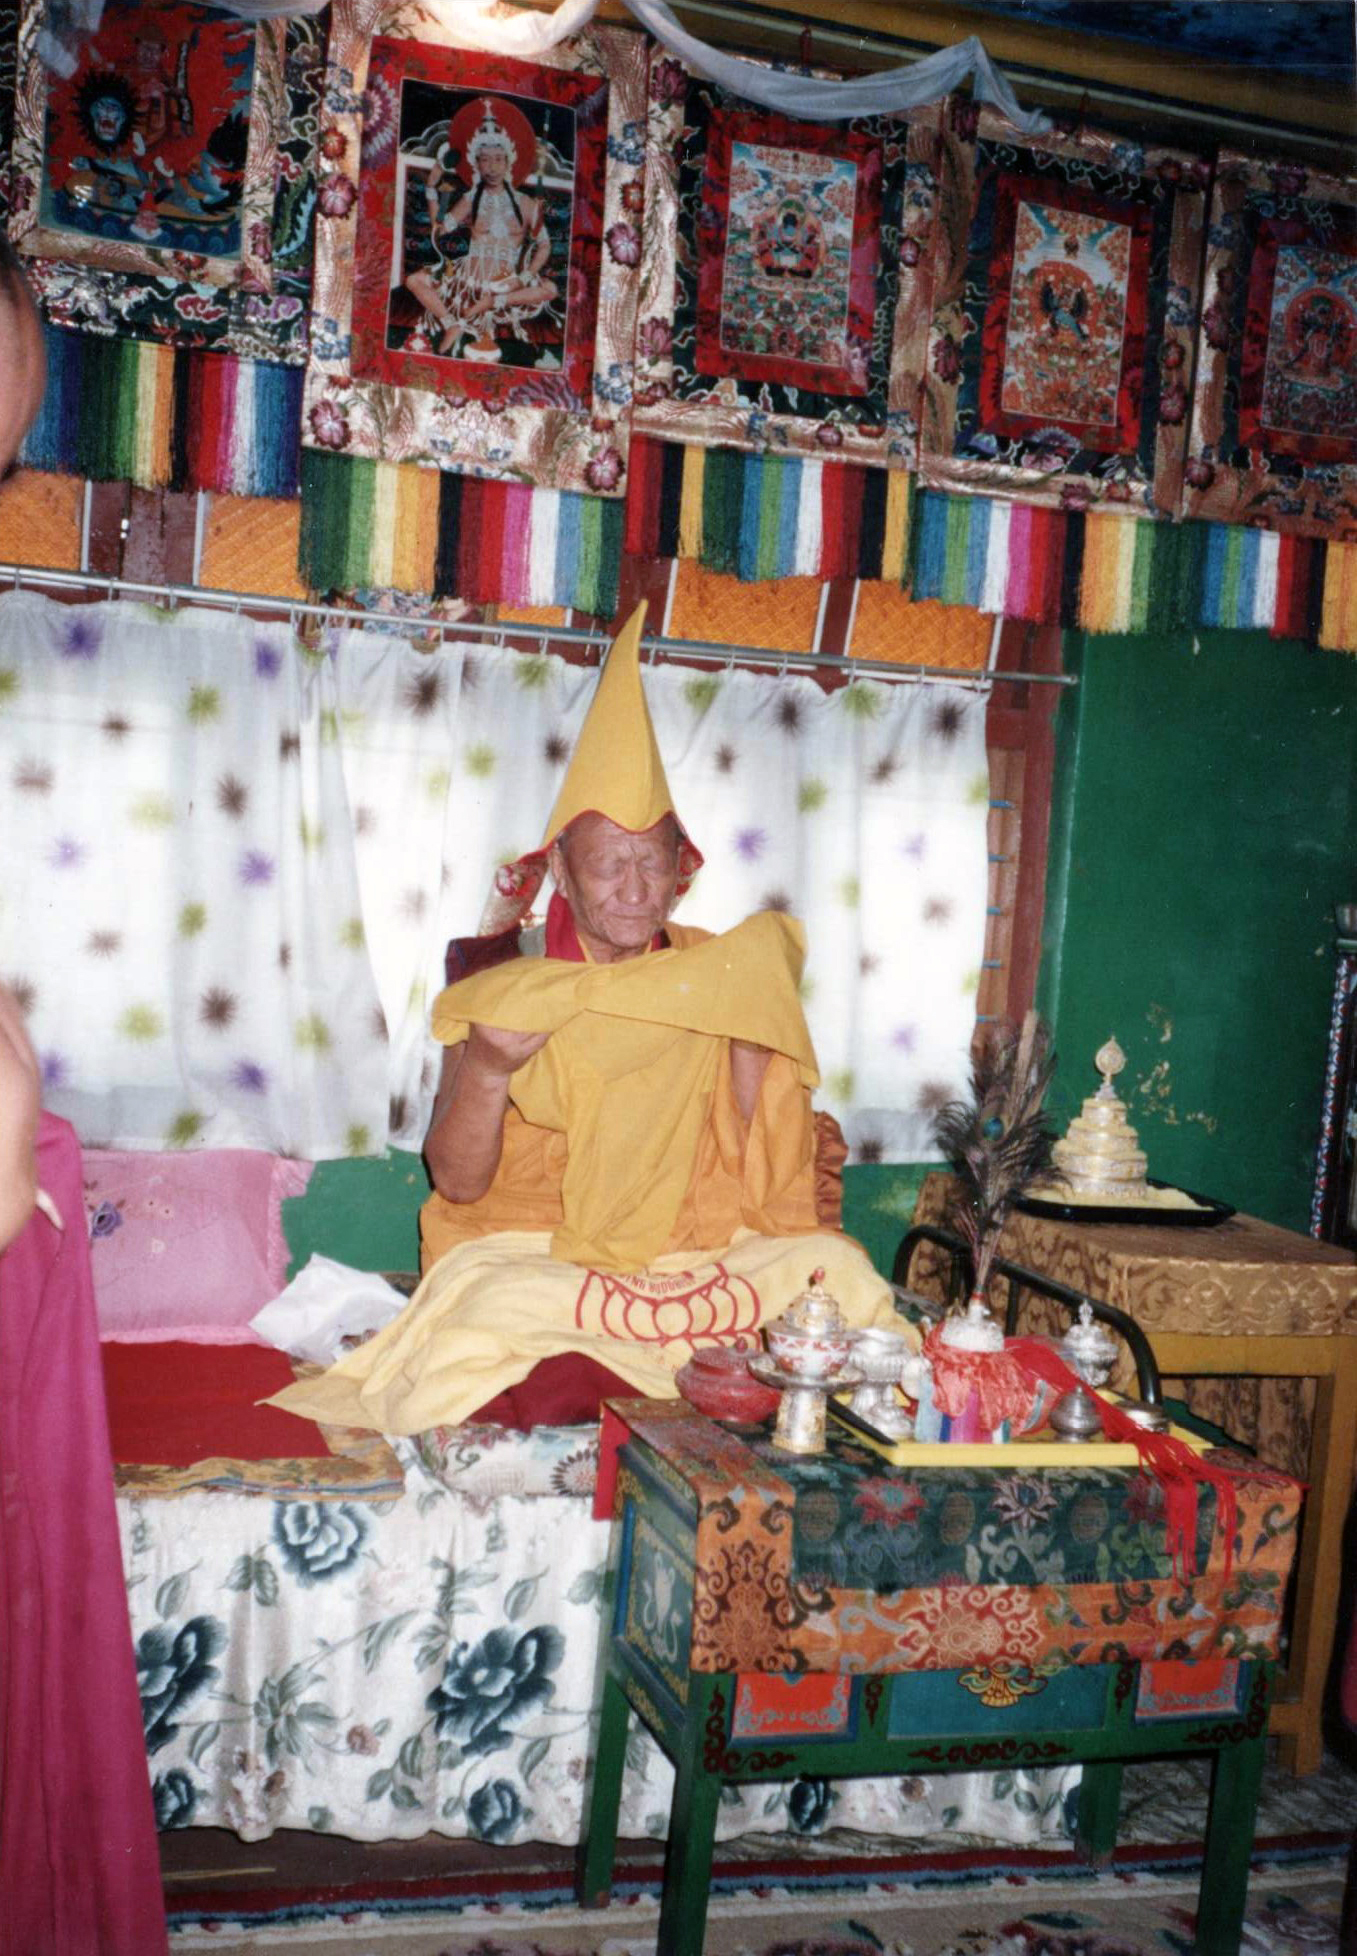 The Oracle of Gaden Monastery taking trance of Duldzin Dorje Shugden in South India, 1993 prior to the Dorje Shugden ban.